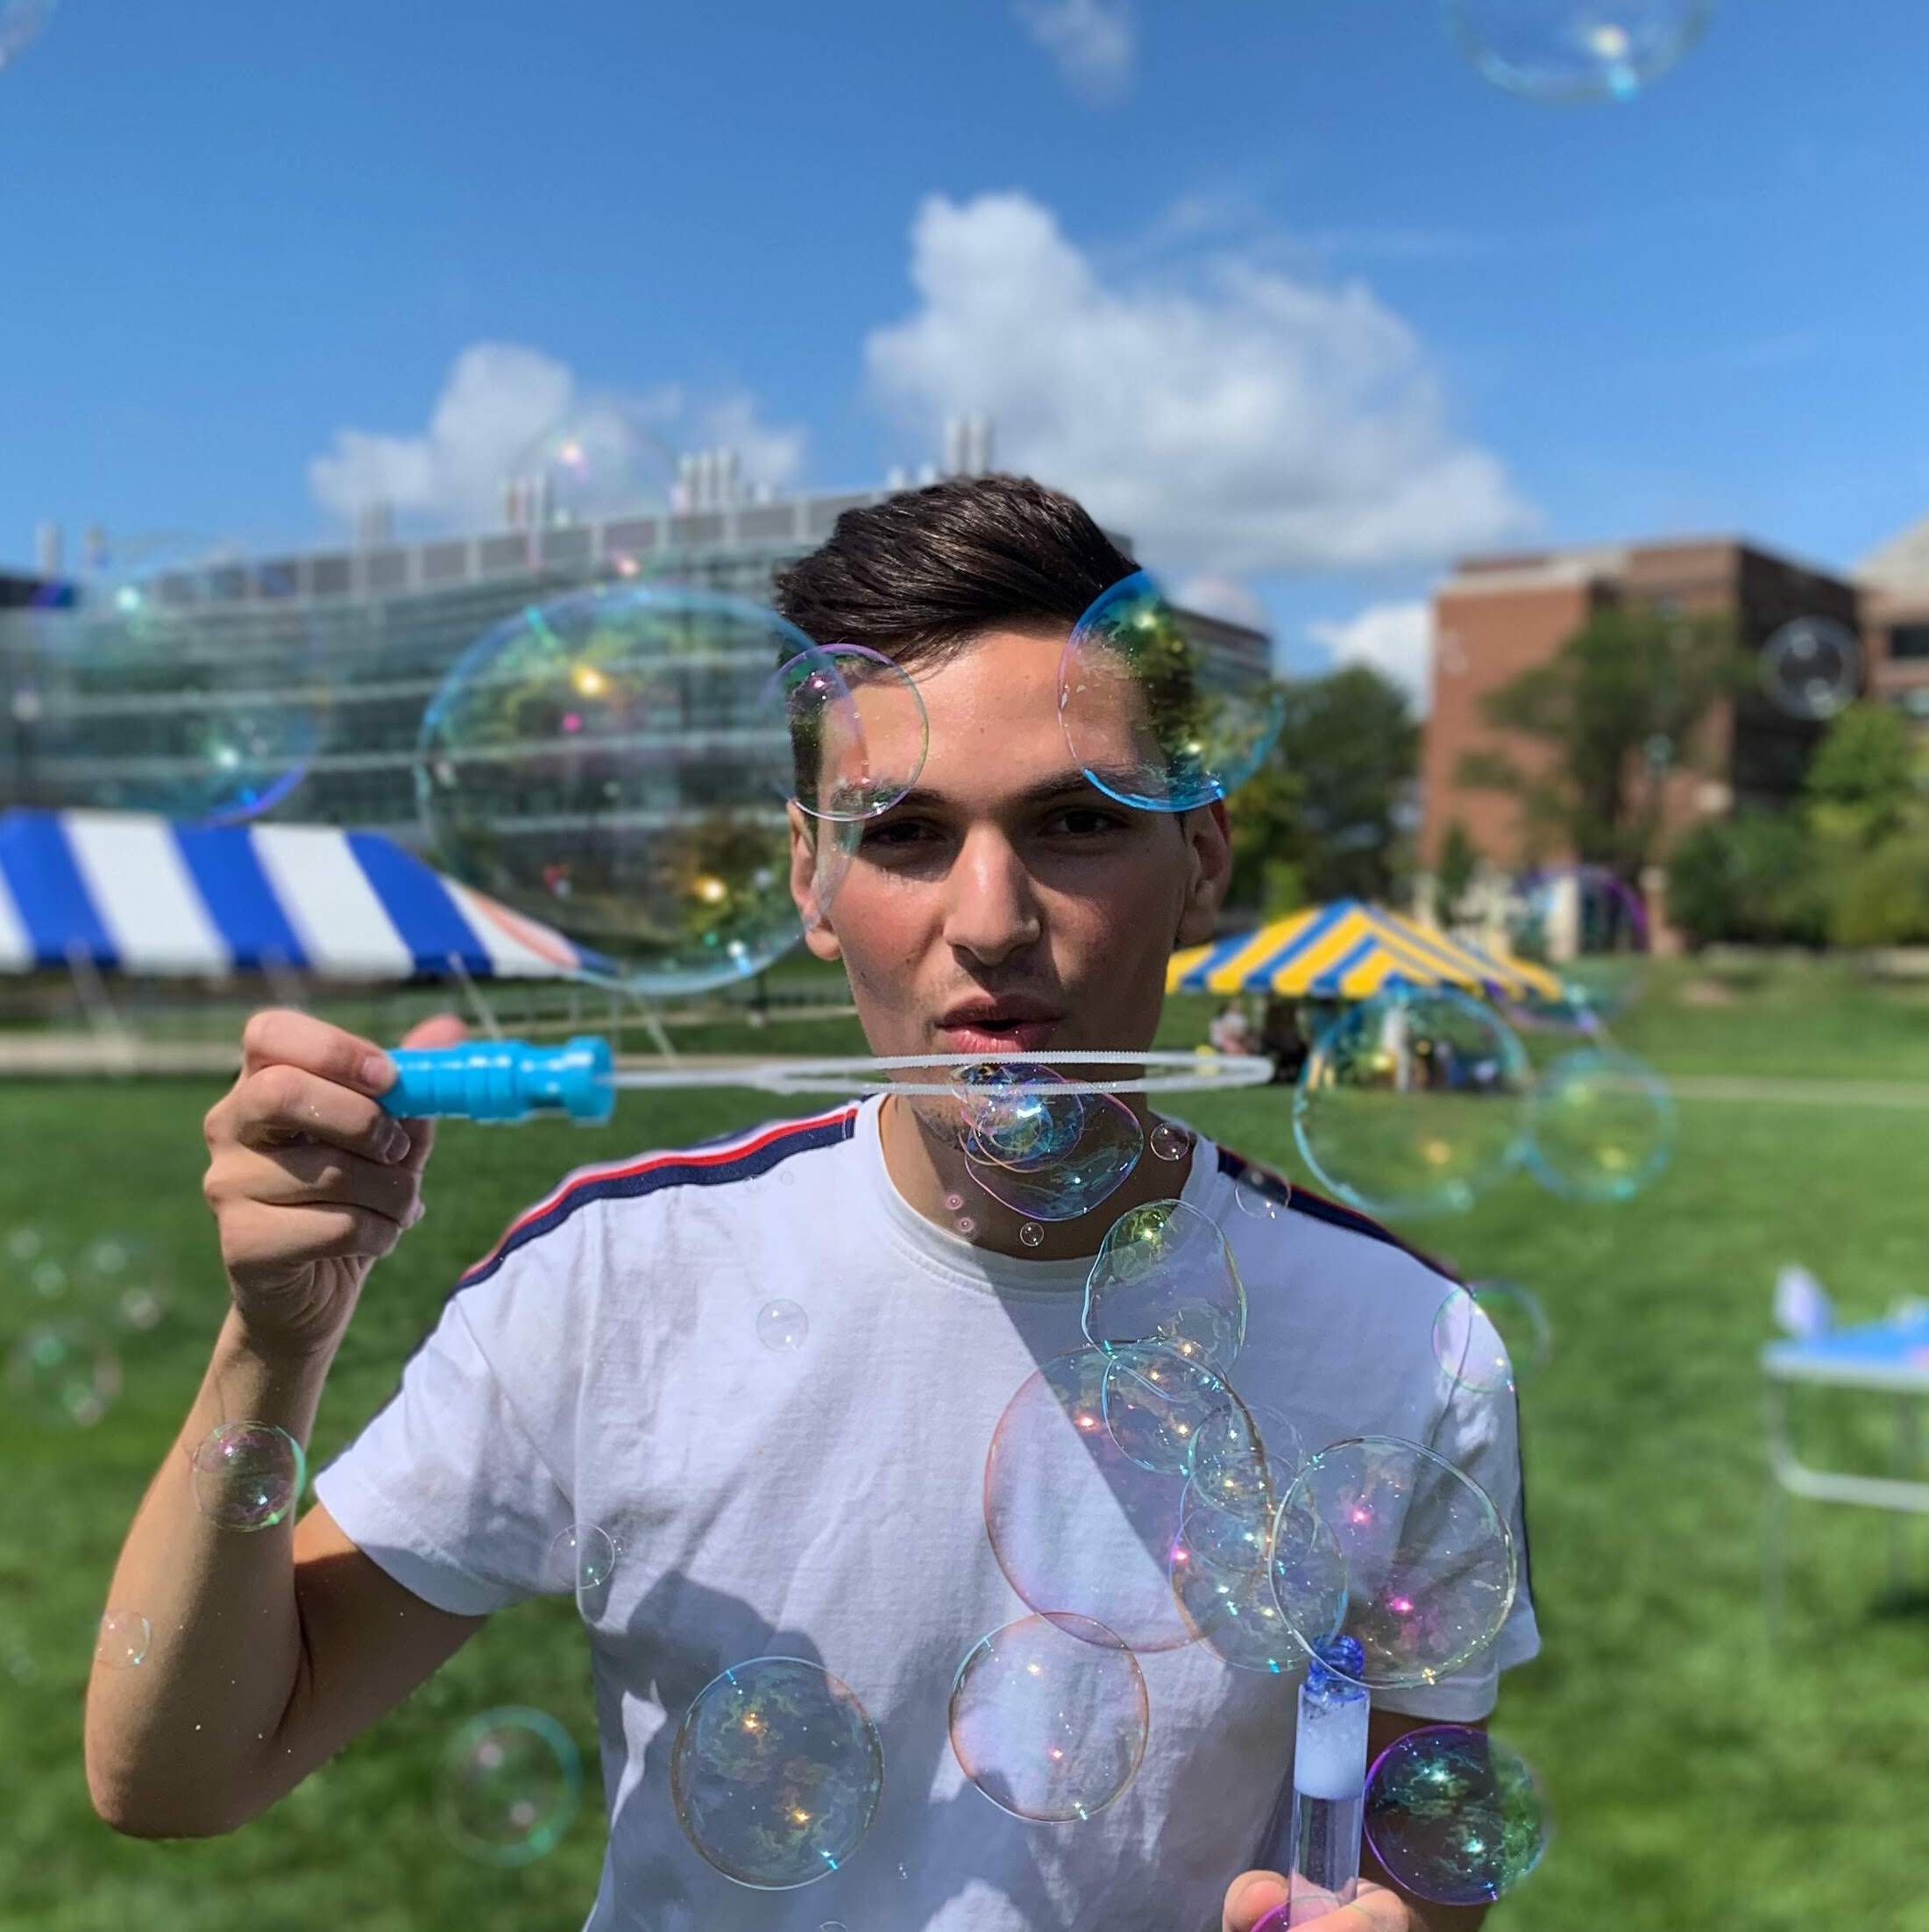 Picture of AJ Carter blowing bubbles